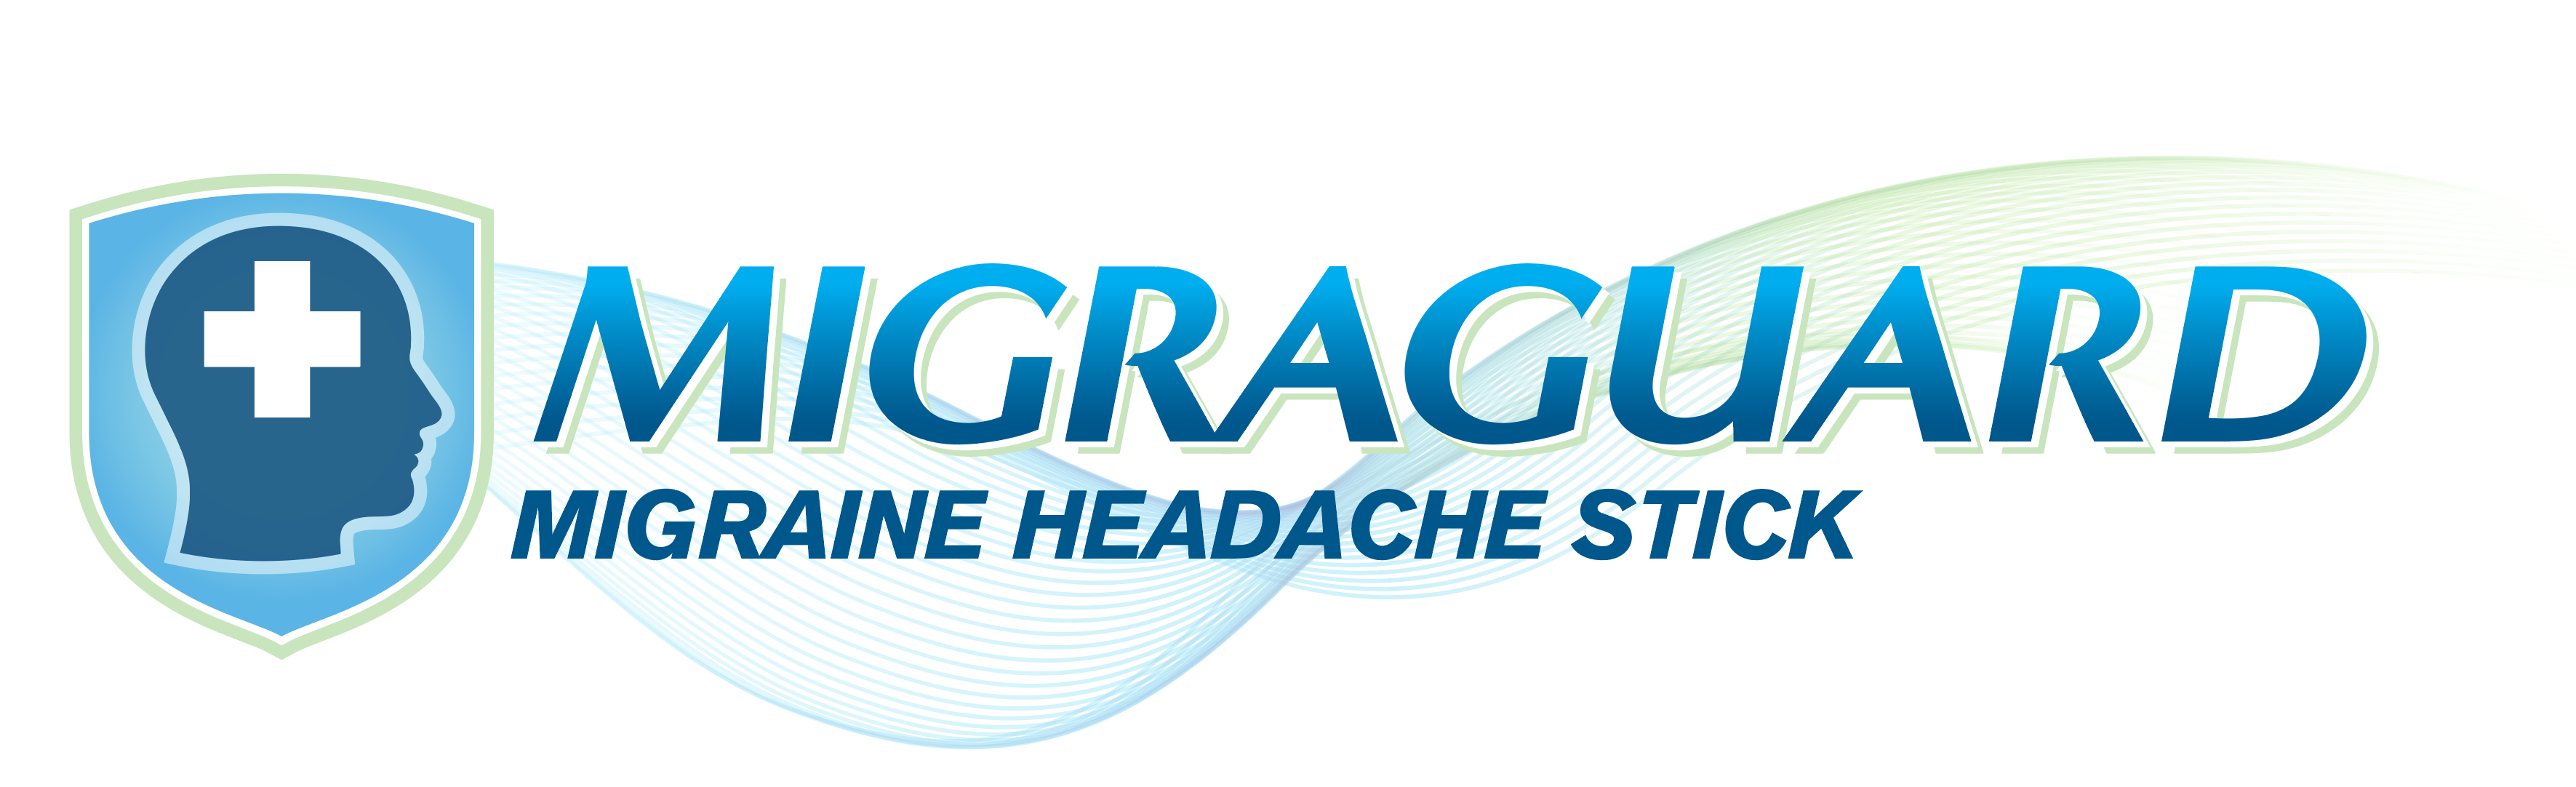 New Migraine Relief Product Provides Headache Sufferers with Alternative Treatment Option